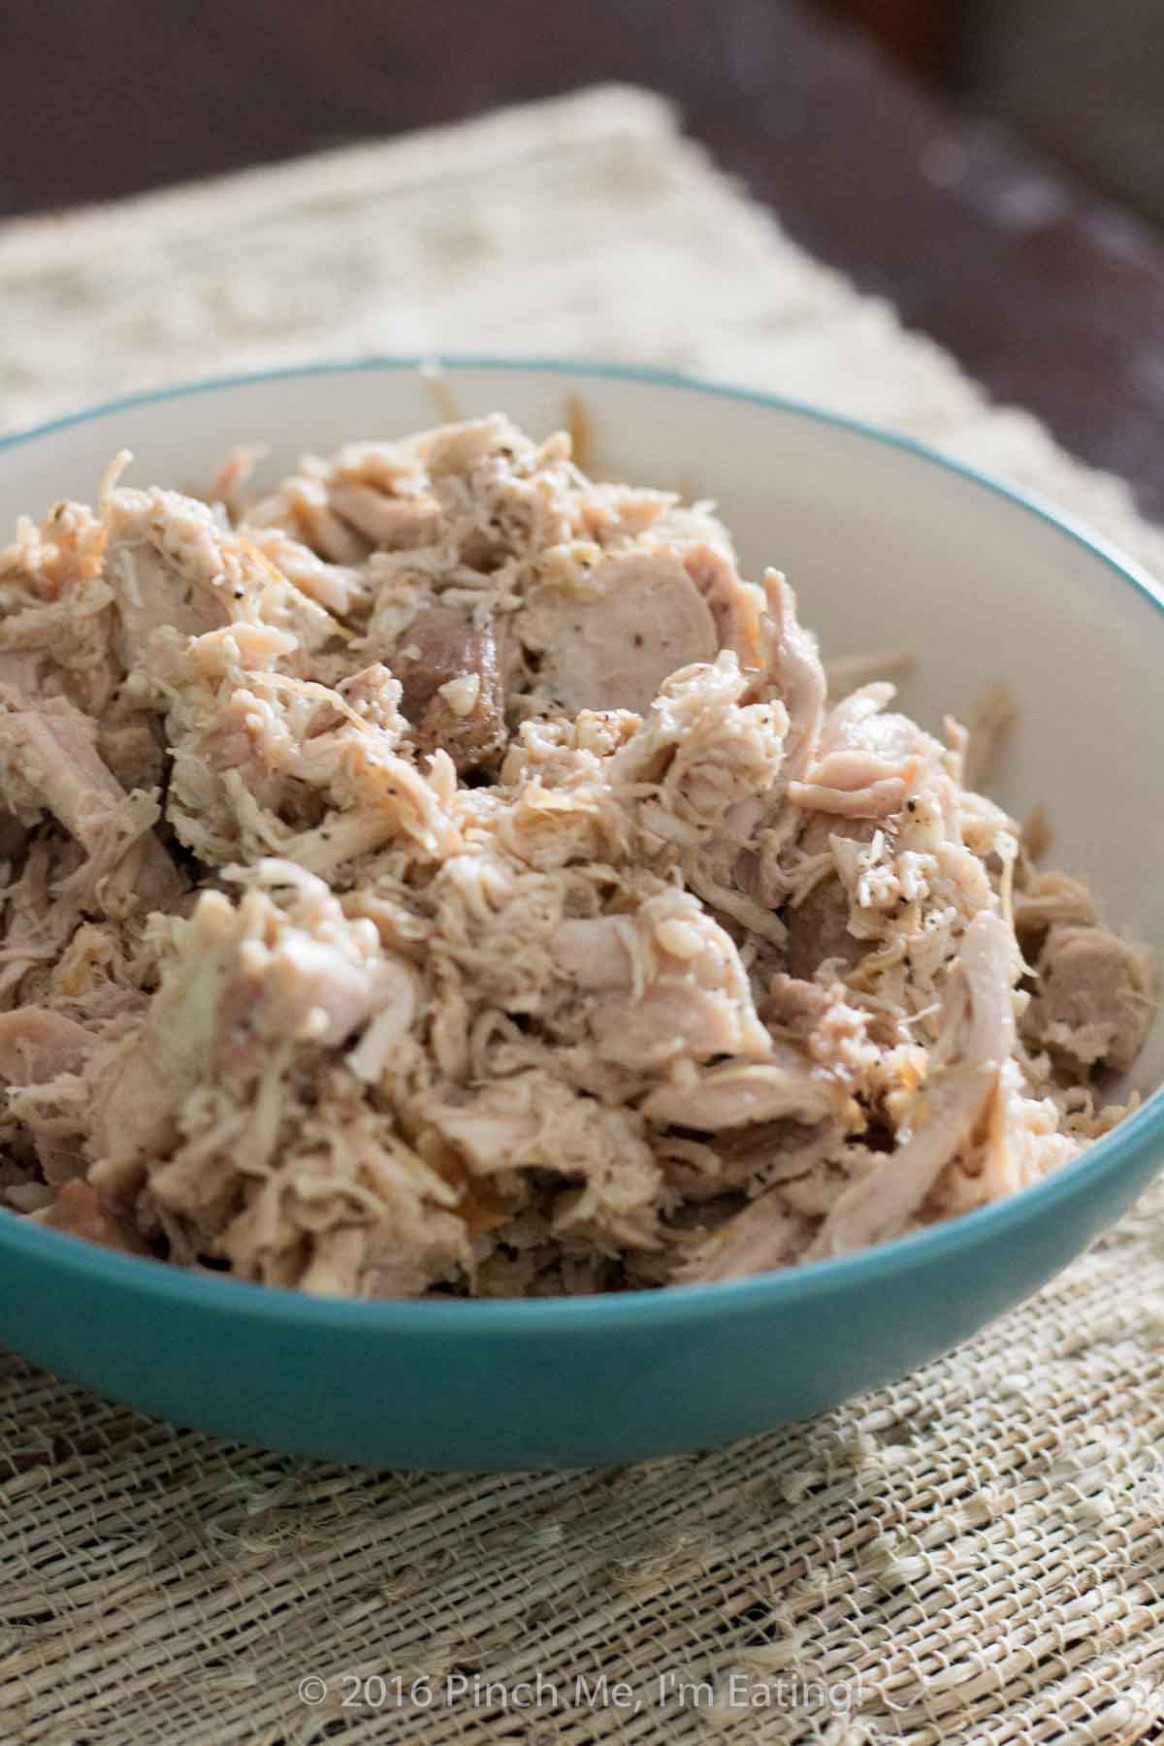 Easy Diced Or Shredded Chicken For Recipes - Recipes Pulled Chicken